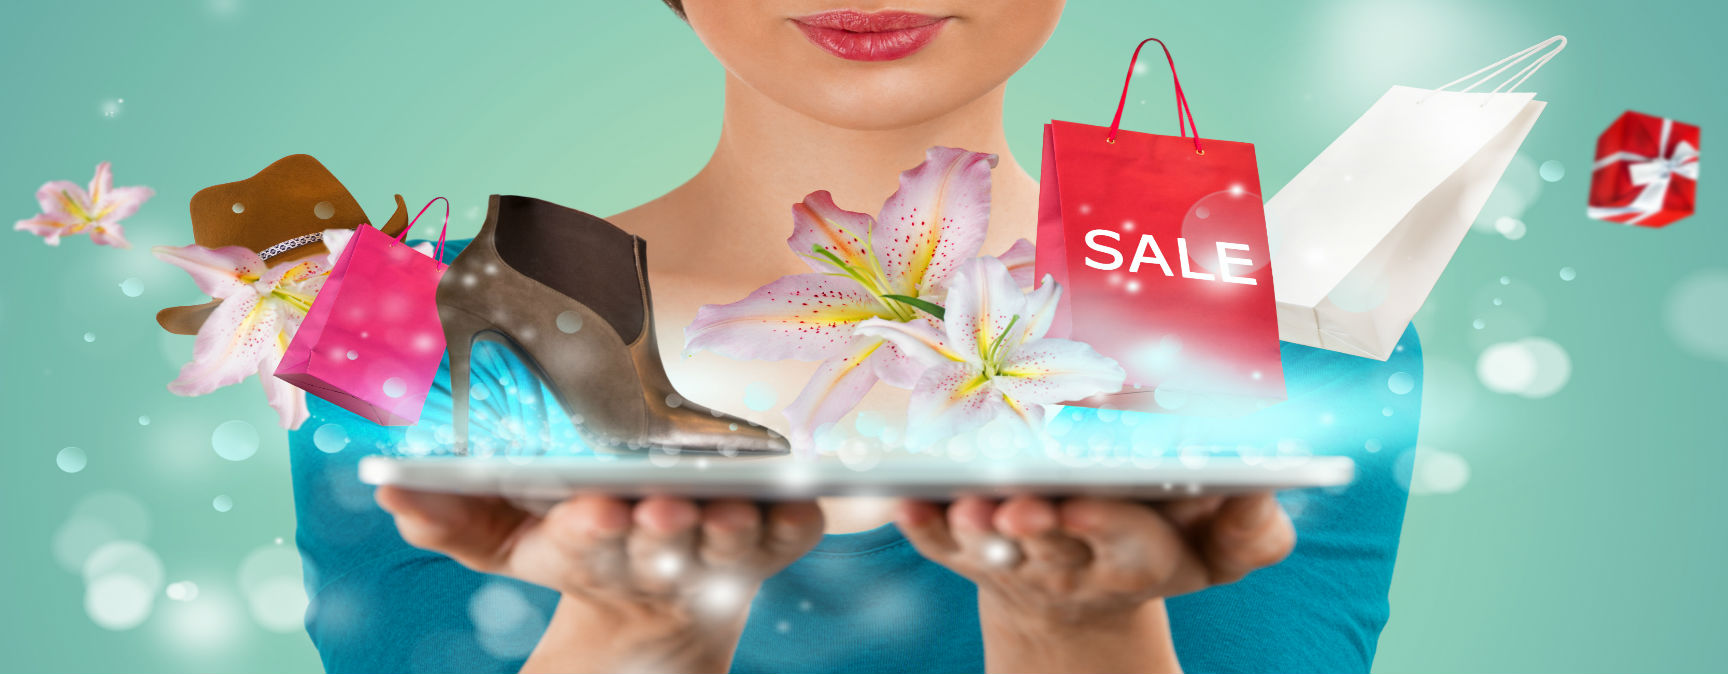 E-Commerce Marketing. Internet Retailer. Exciting online shopping and fulfillment.